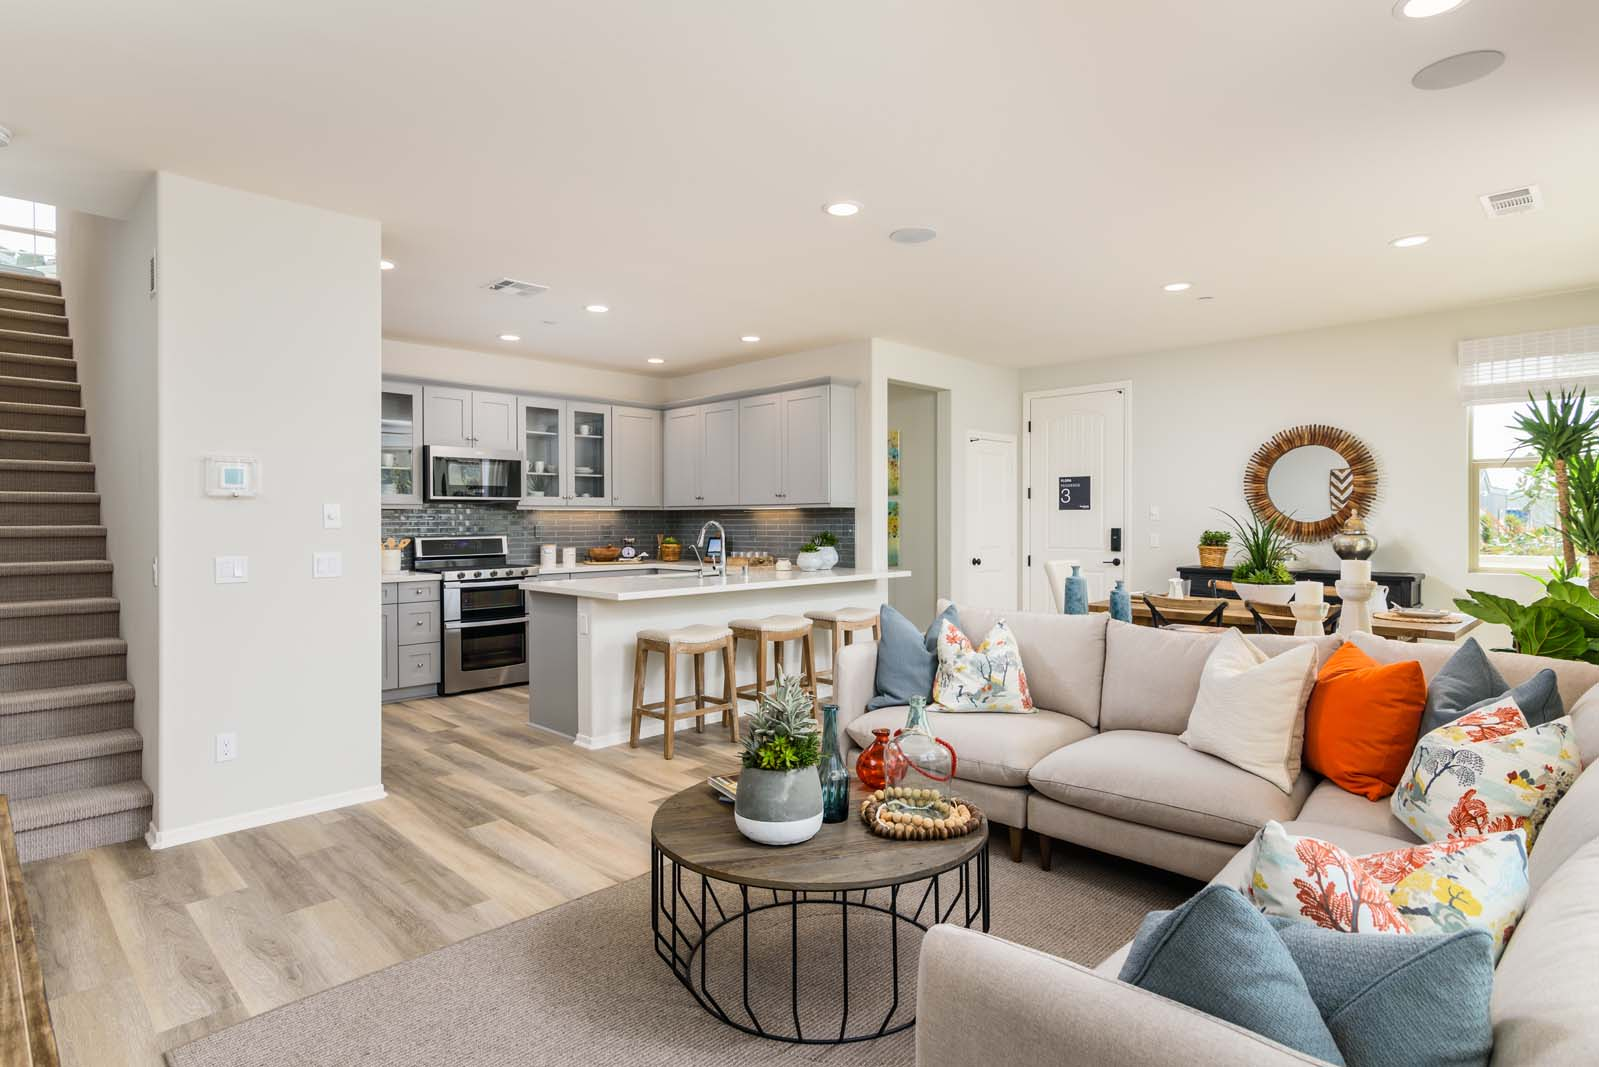 Living area in new san diego townhome at Flora at the village of escaya